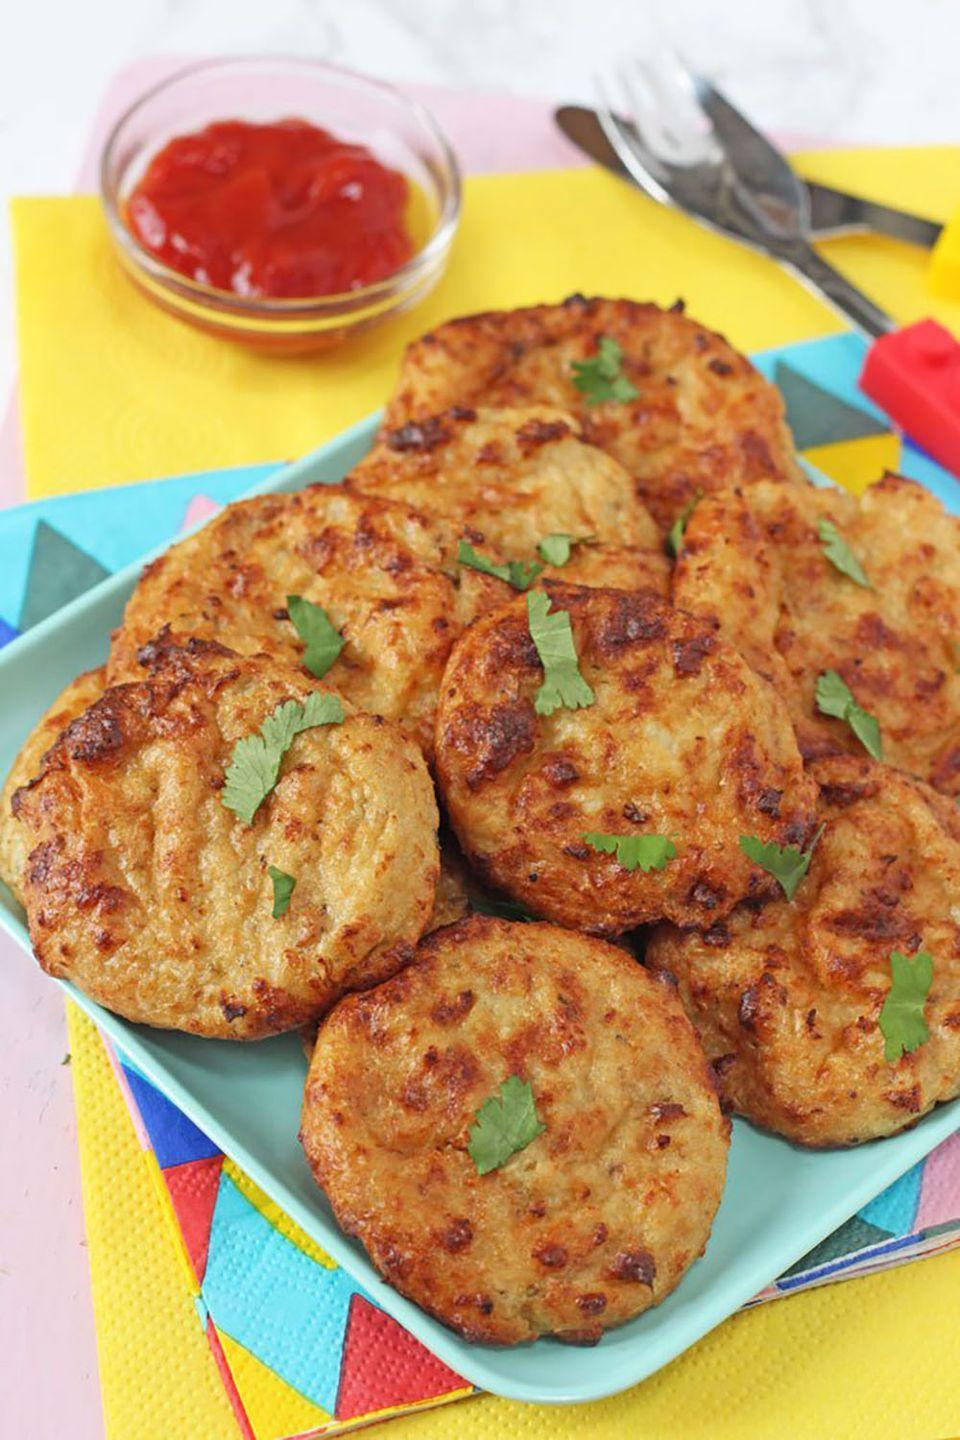 """<p>Trick your chicken nugget lover into trying some veggies with these cheesy bites.</p><p><strong>Get the recipe from <a href=""""http://www.myfussyeater.com/cauliflower-cheese-nuggets-2/"""" rel=""""nofollow noopener"""" target=""""_blank"""" data-ylk=""""slk:My Fussy Eater"""" class=""""link rapid-noclick-resp"""">My Fussy Eater</a>.</strong></p>"""